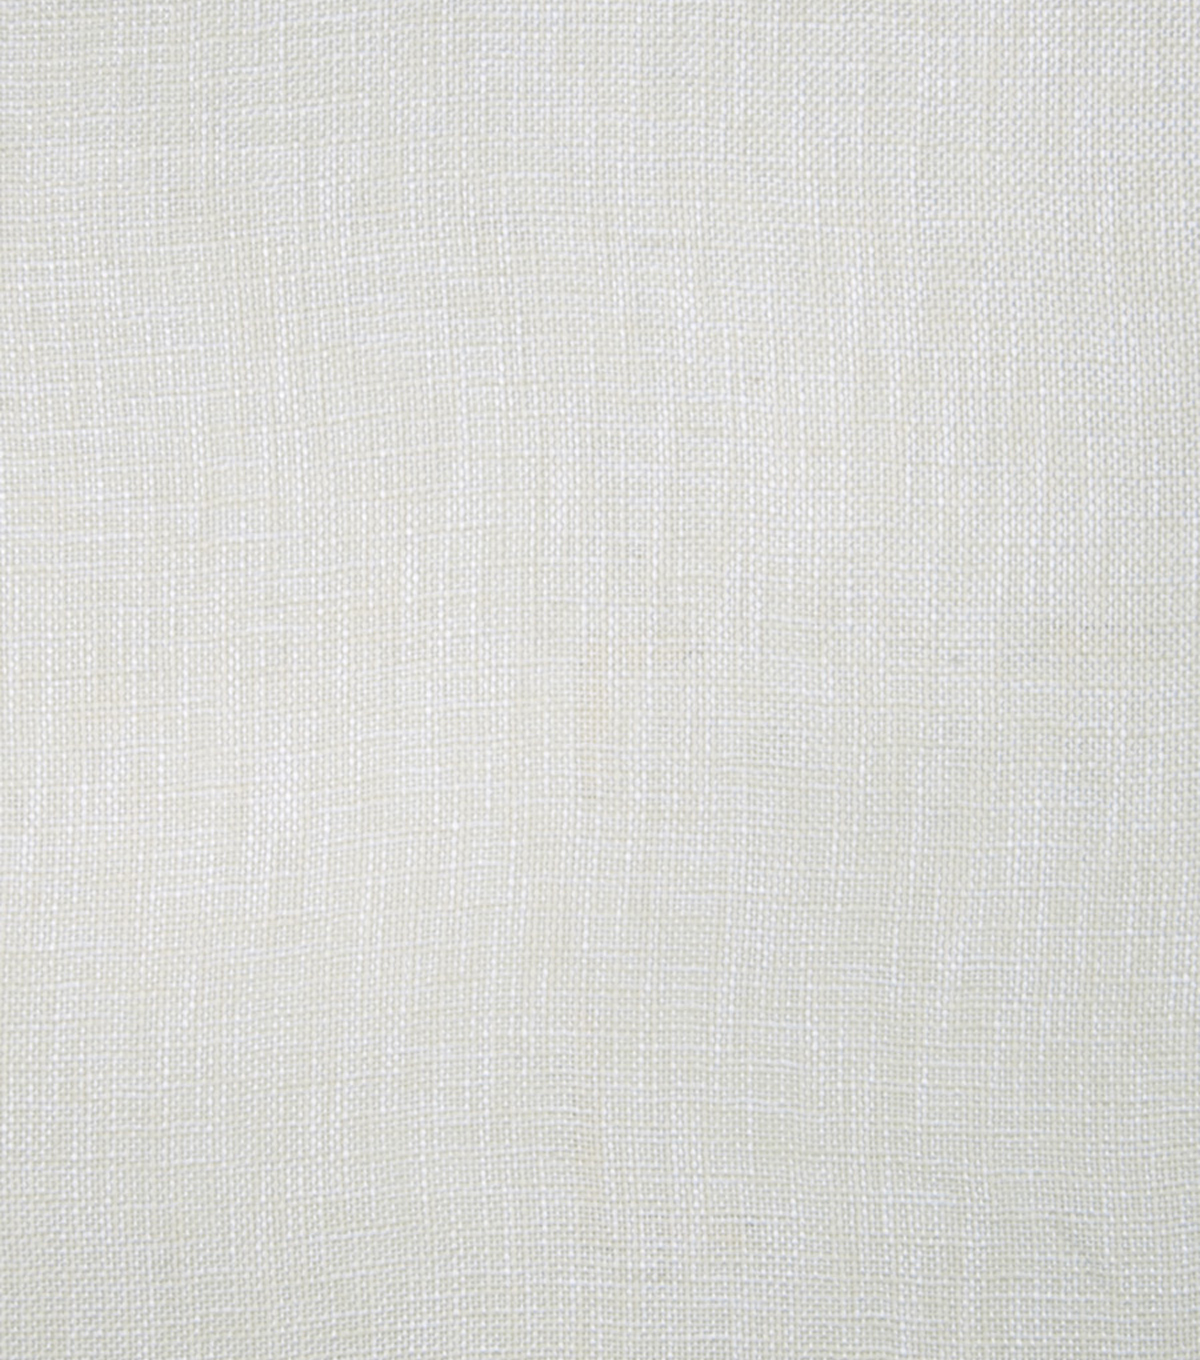 Home Decor 8\u0022x8\u0022 Fabric Swatch-Eaton Square Bayonne Ivory